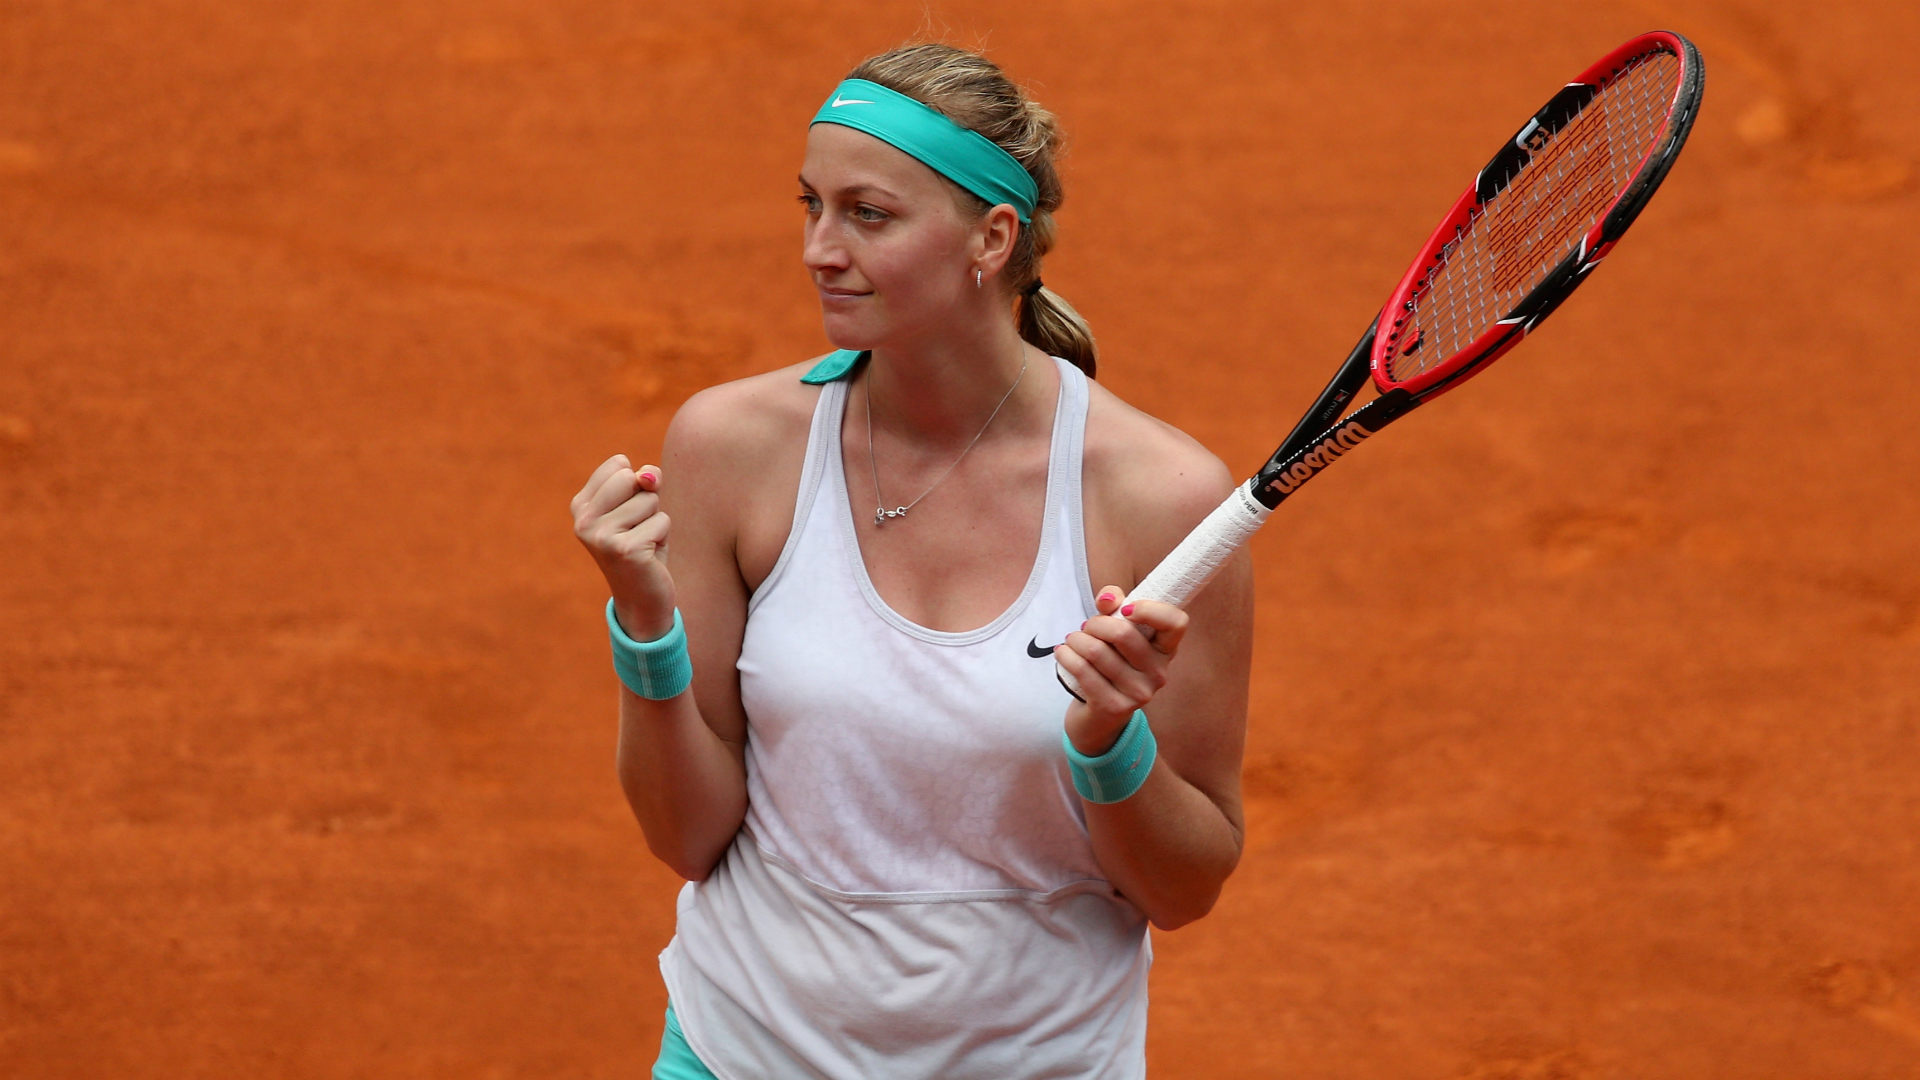 Petra Kvitova 'fell in love' with tennis again after ...